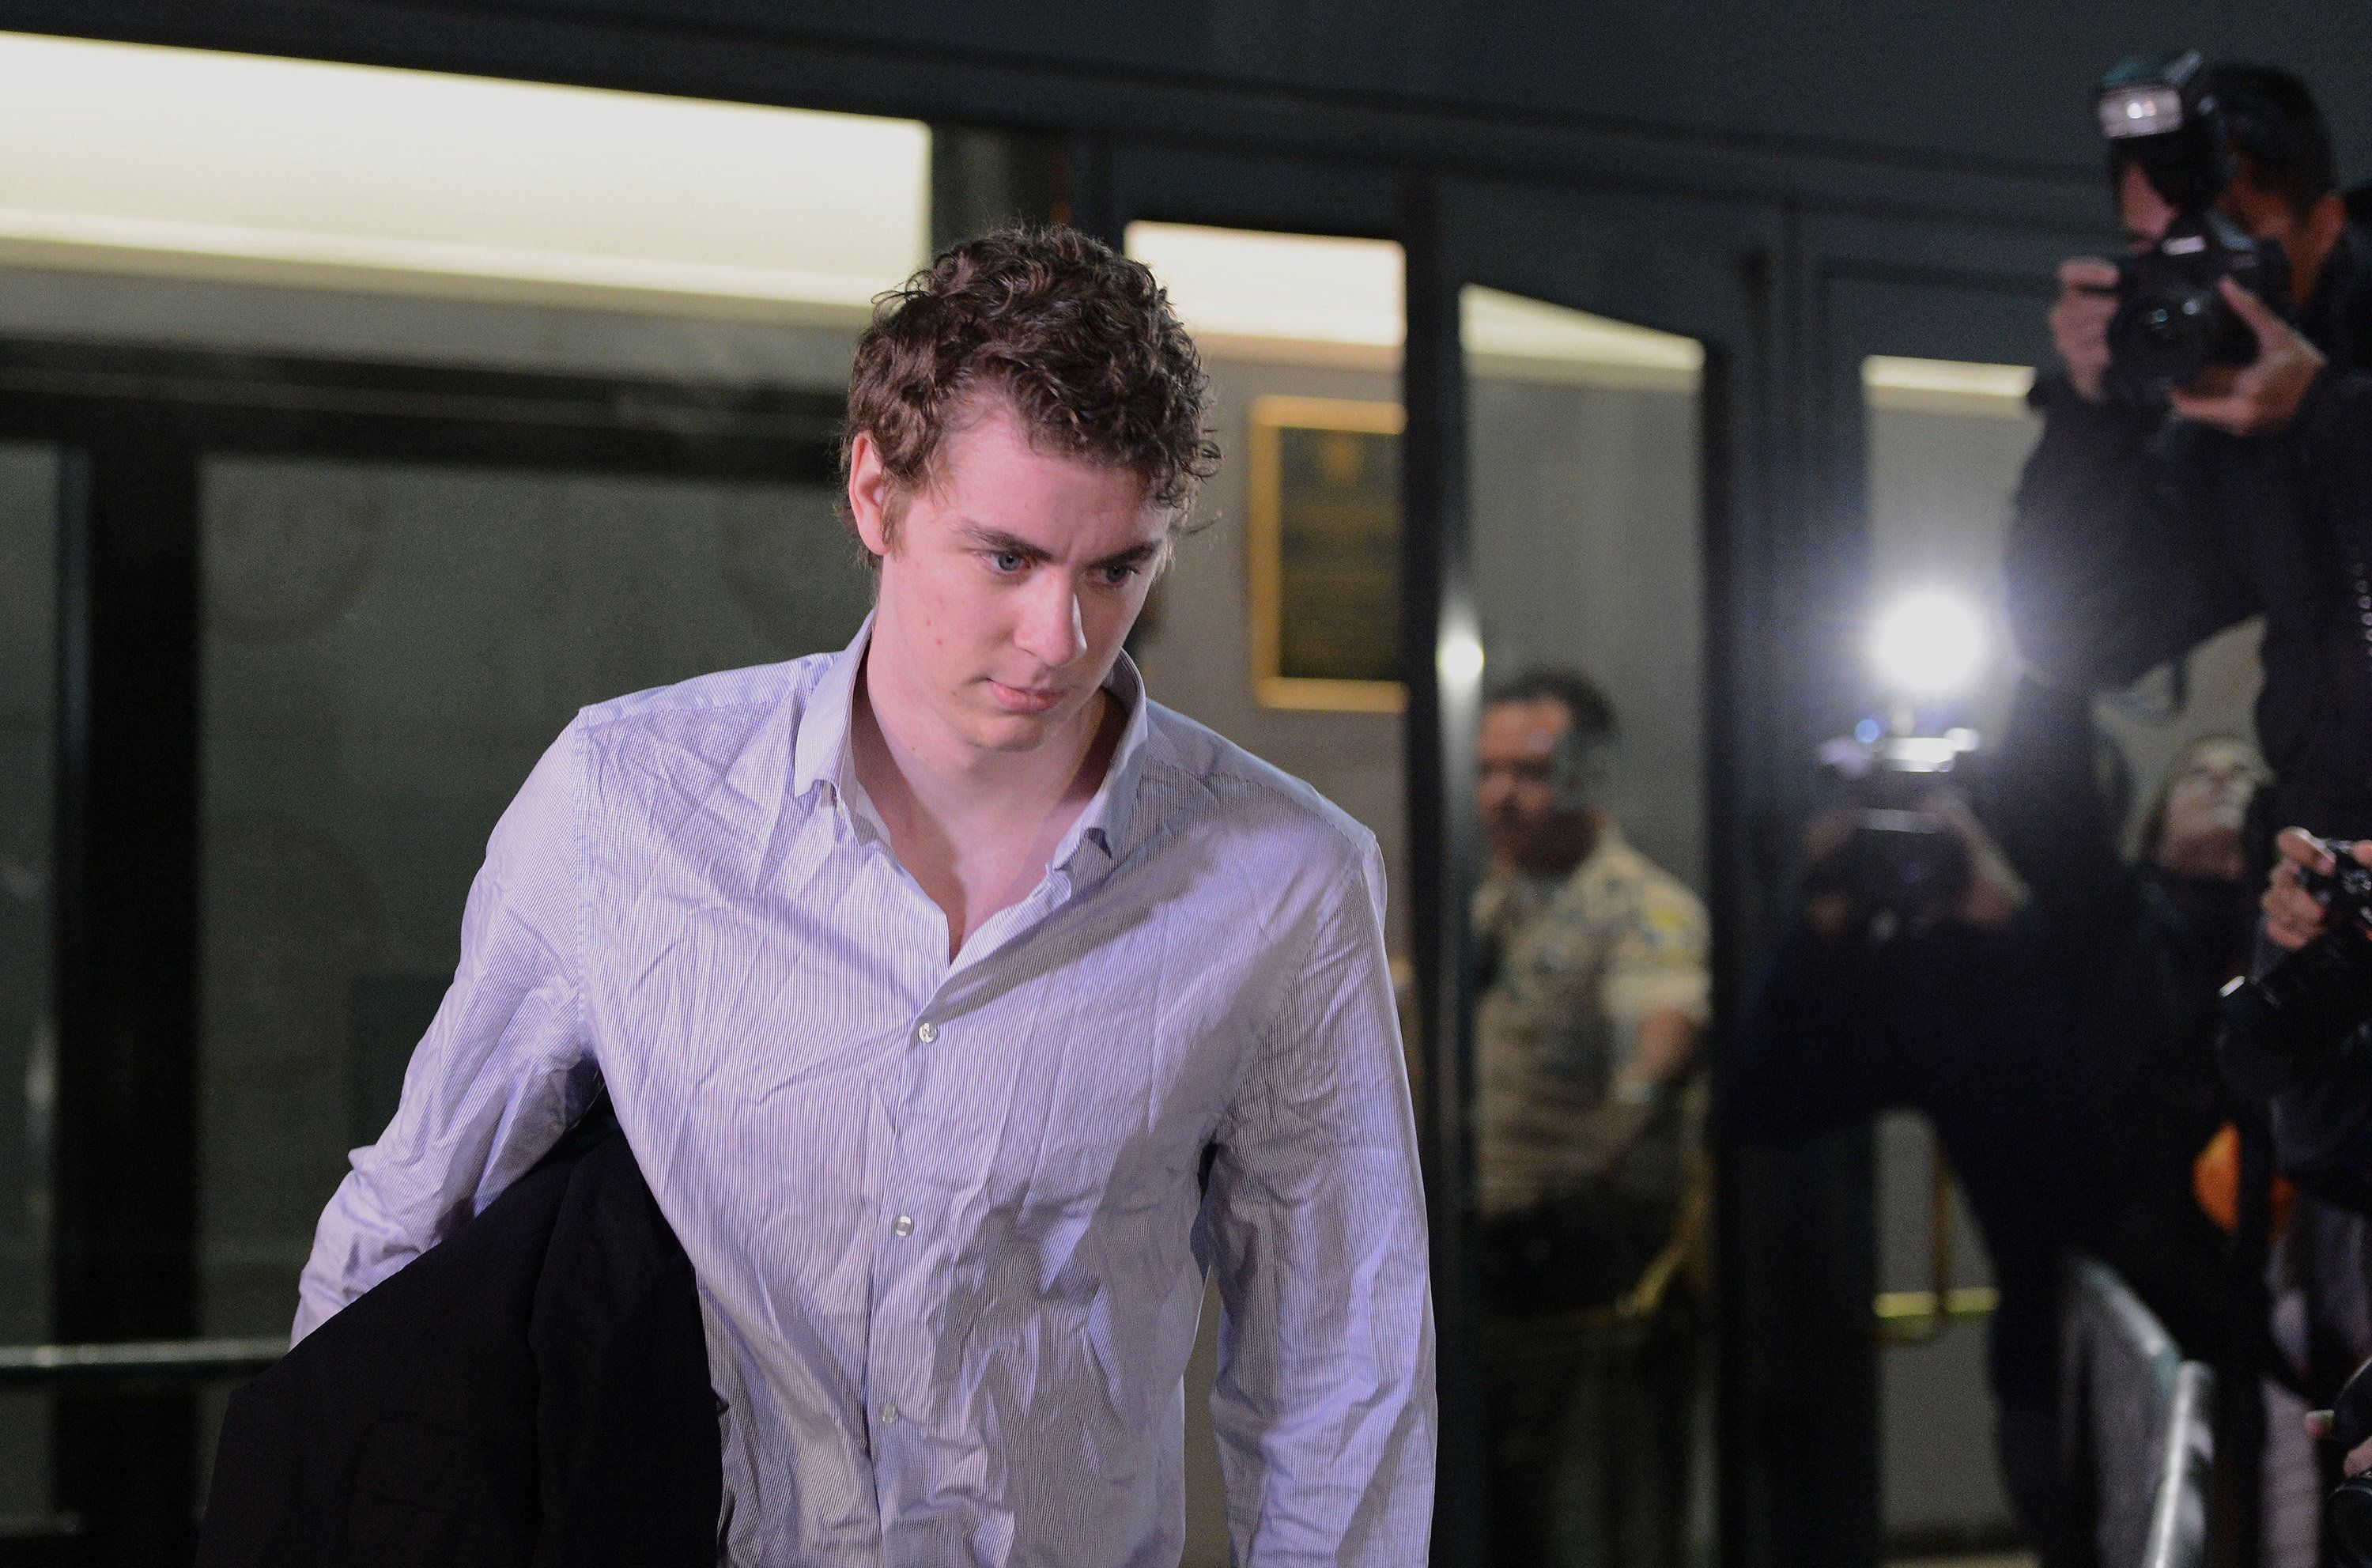 Brock Turner leaves the Santa Clara County Main Jail on Sept. 2, 2016, in San Jose, Calif. (Dan Honda/Bay Area News Group/TNS via Getty Images)